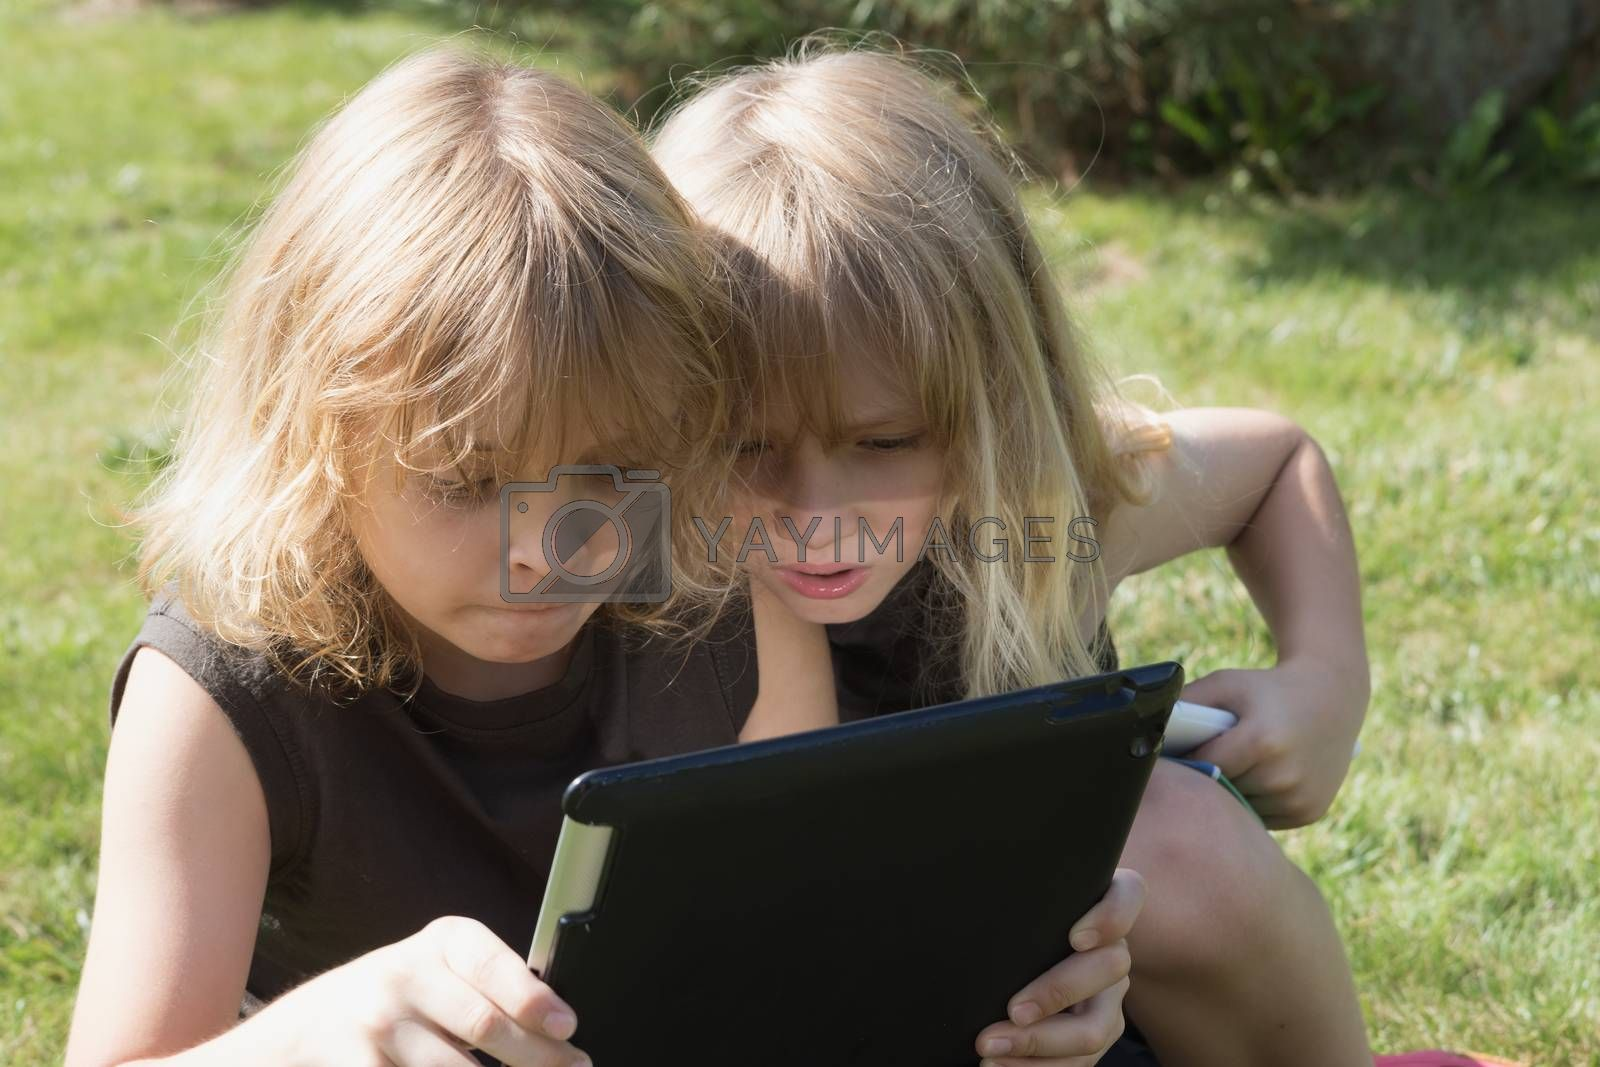 Two blond brothers are sitting on the grass and looking to the tablet. Boy sitting on the right has an open mouth and is impressed  by what he  see on the tablet. All potentials trademarks are removed,